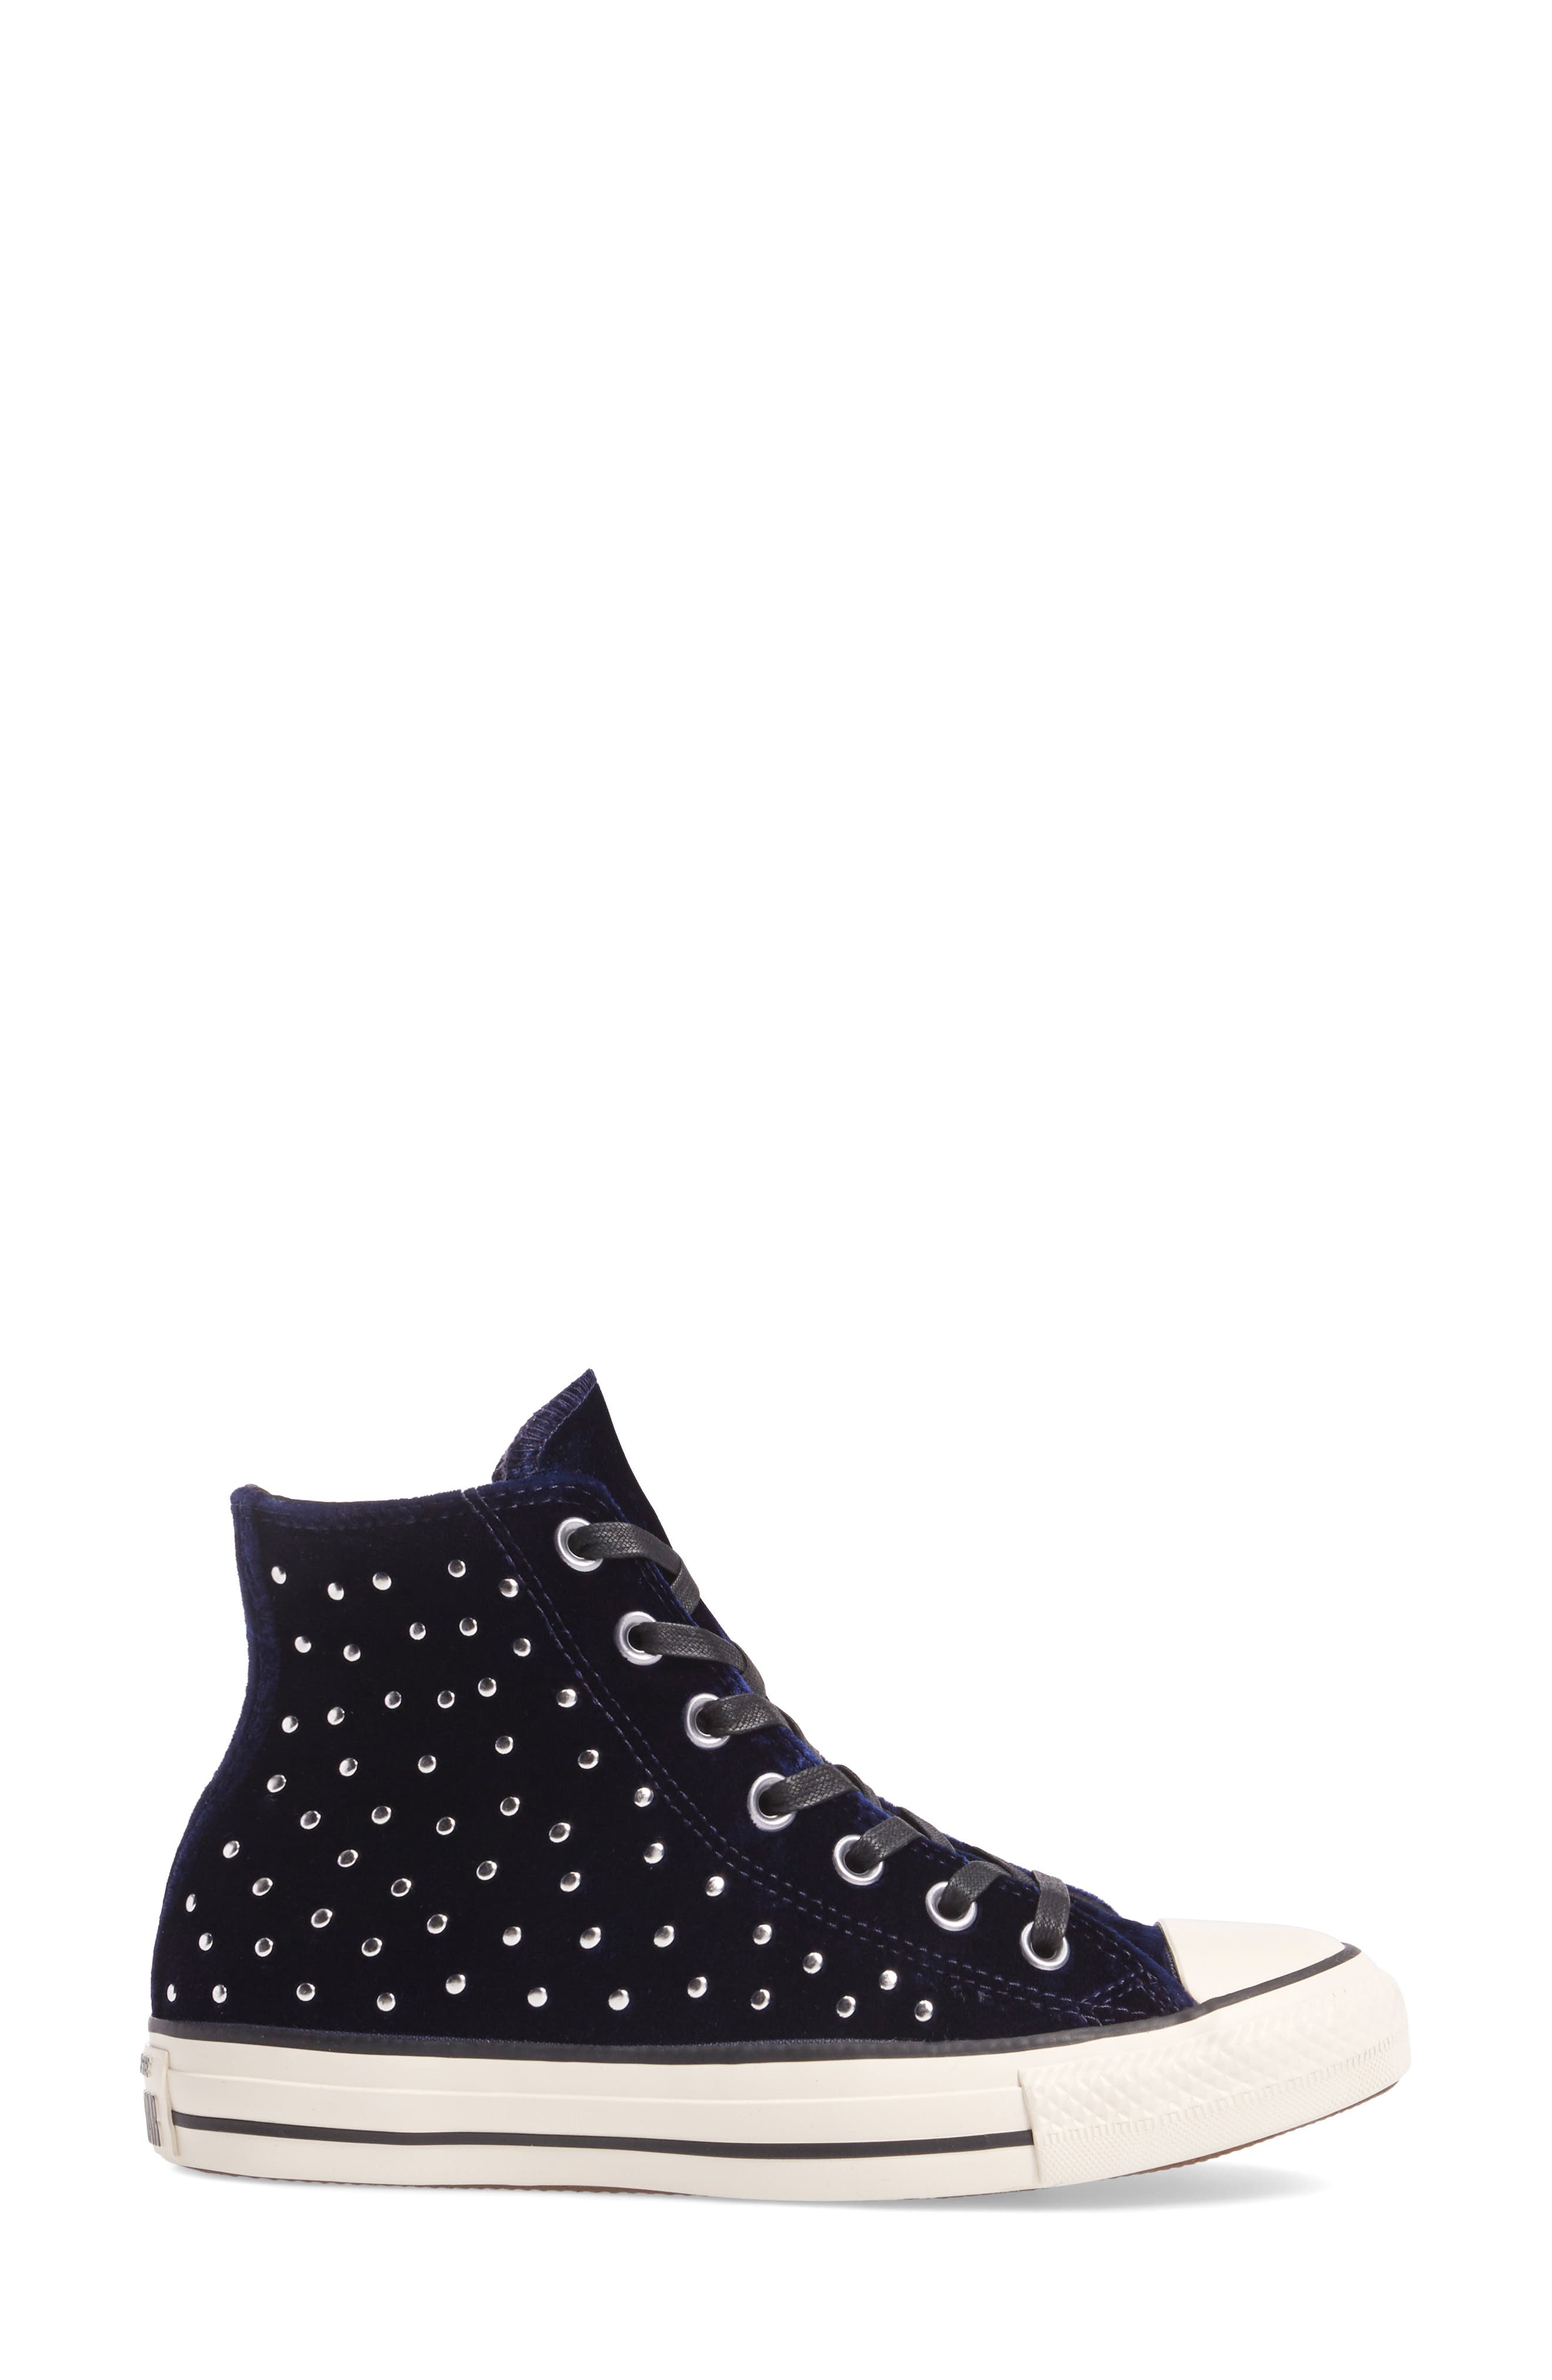 Chuck Taylor<sup>®</sup> All Star<sup>®</sup> Studded High Top Sneakers,                             Alternate thumbnail 3, color,                             Eclipse Velvet